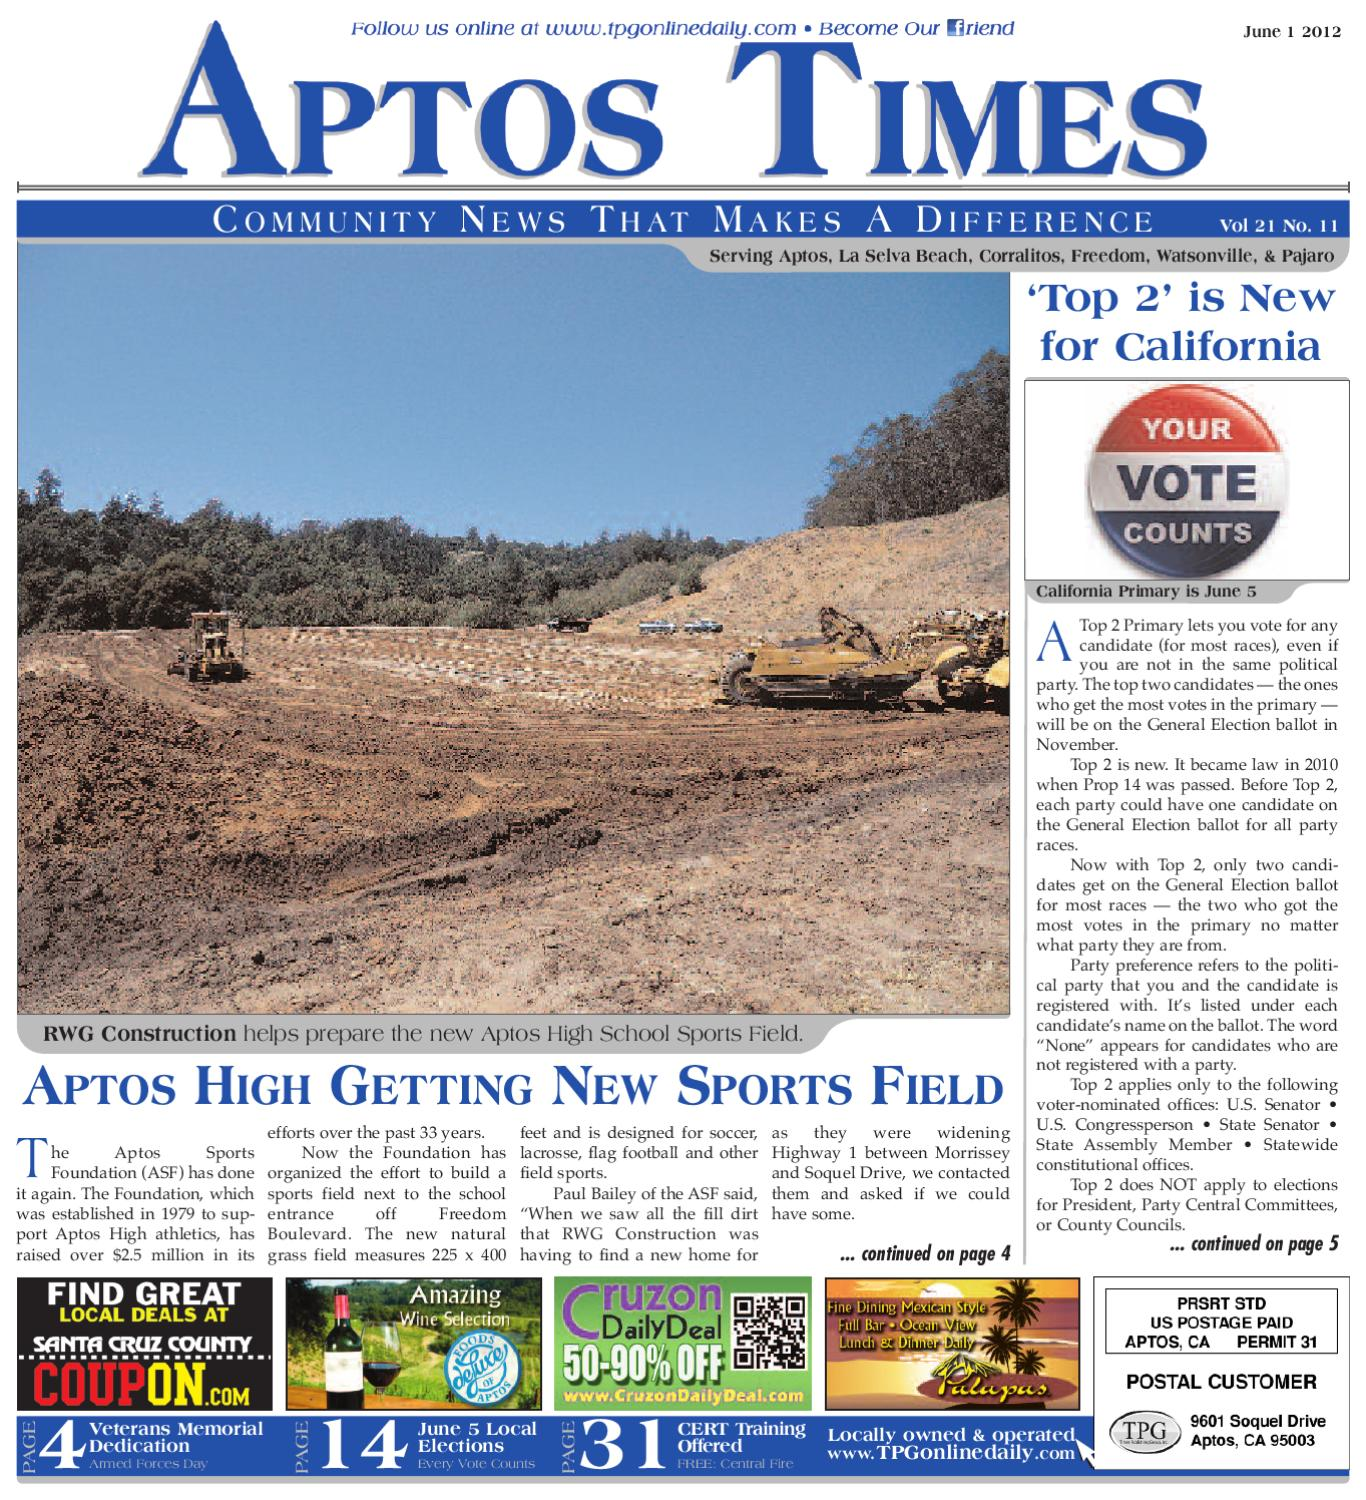 Aptos Times June 1st 2012 by Times Publishing Group issuu